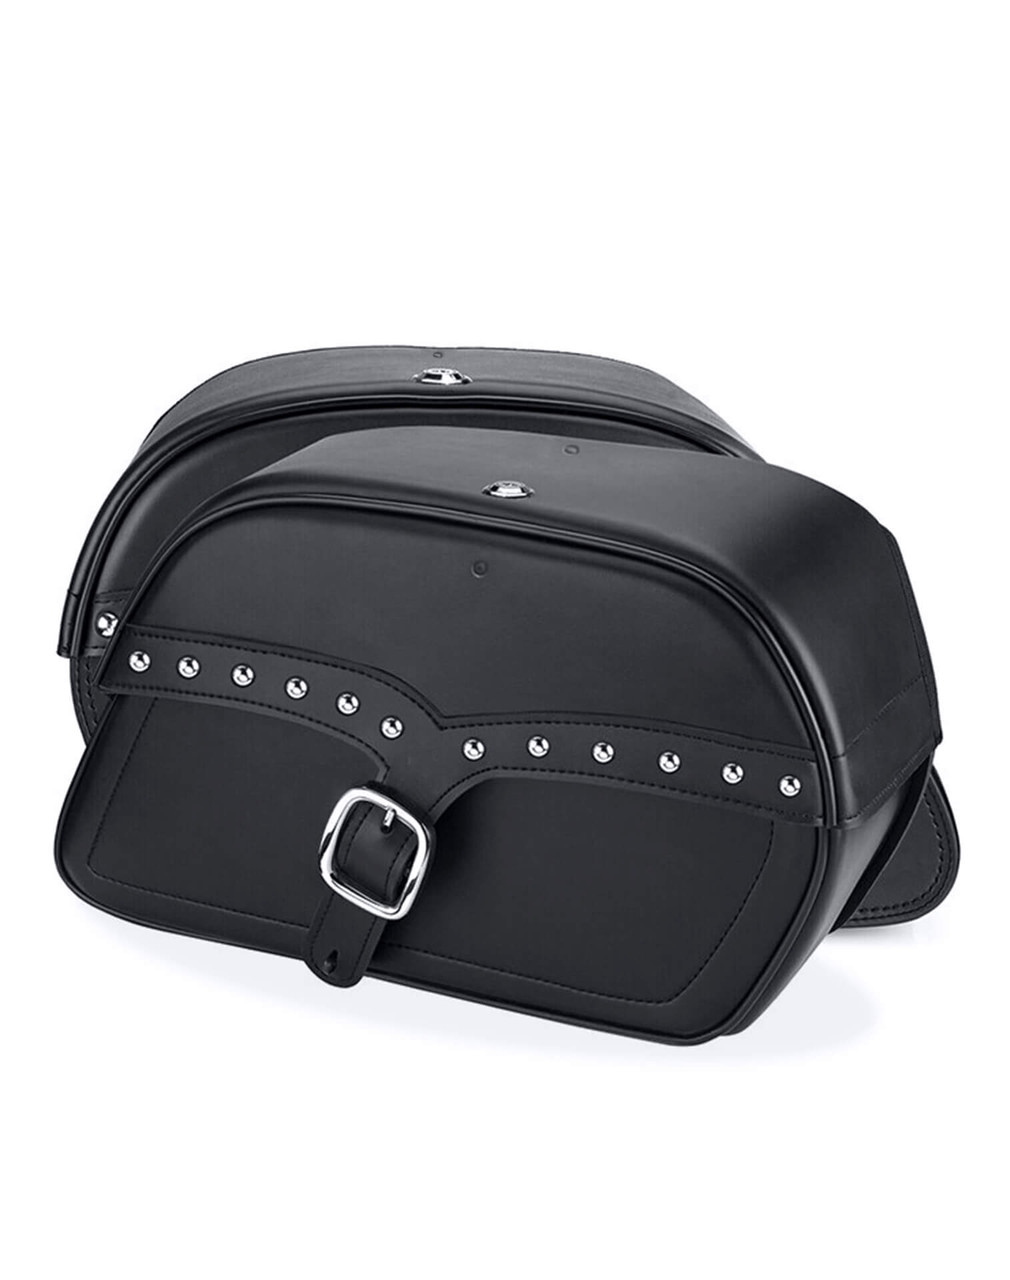 Viking Charger Single Strap Studded Large Motorcycle Saddlebags For Harley Softail Springer FXSTS both bags view